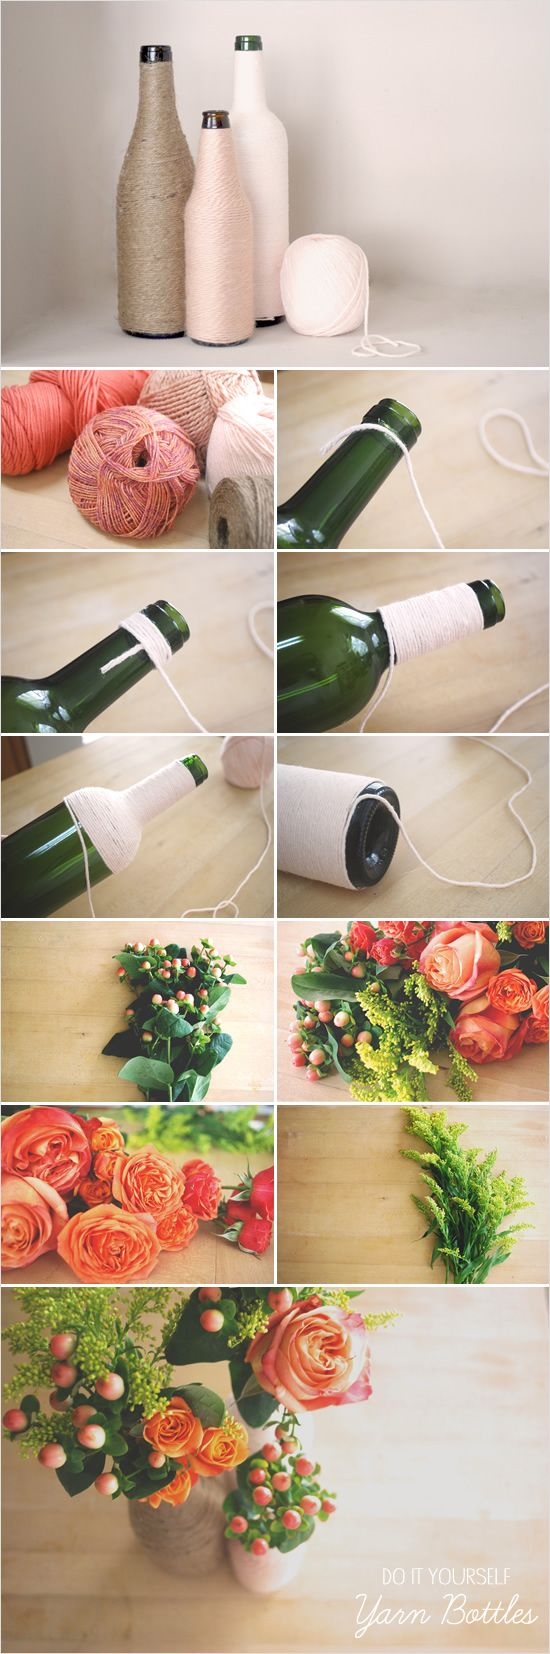 DIY Yarn Wrapped Bottles @L Rod